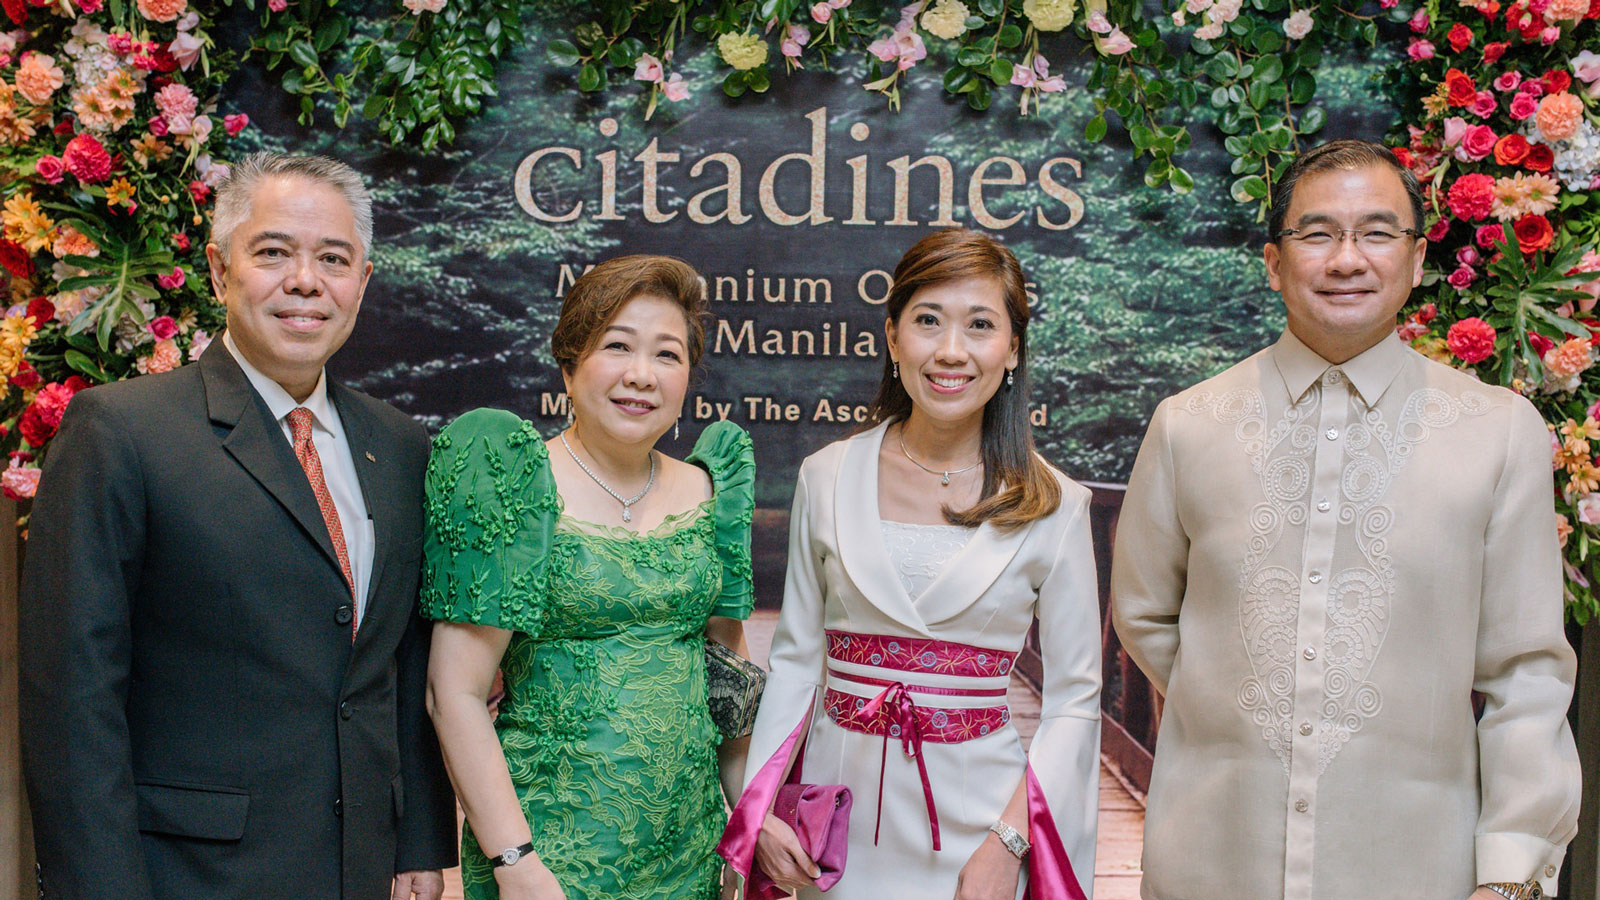 Citadines Millennium Ortigas Manila grand launch